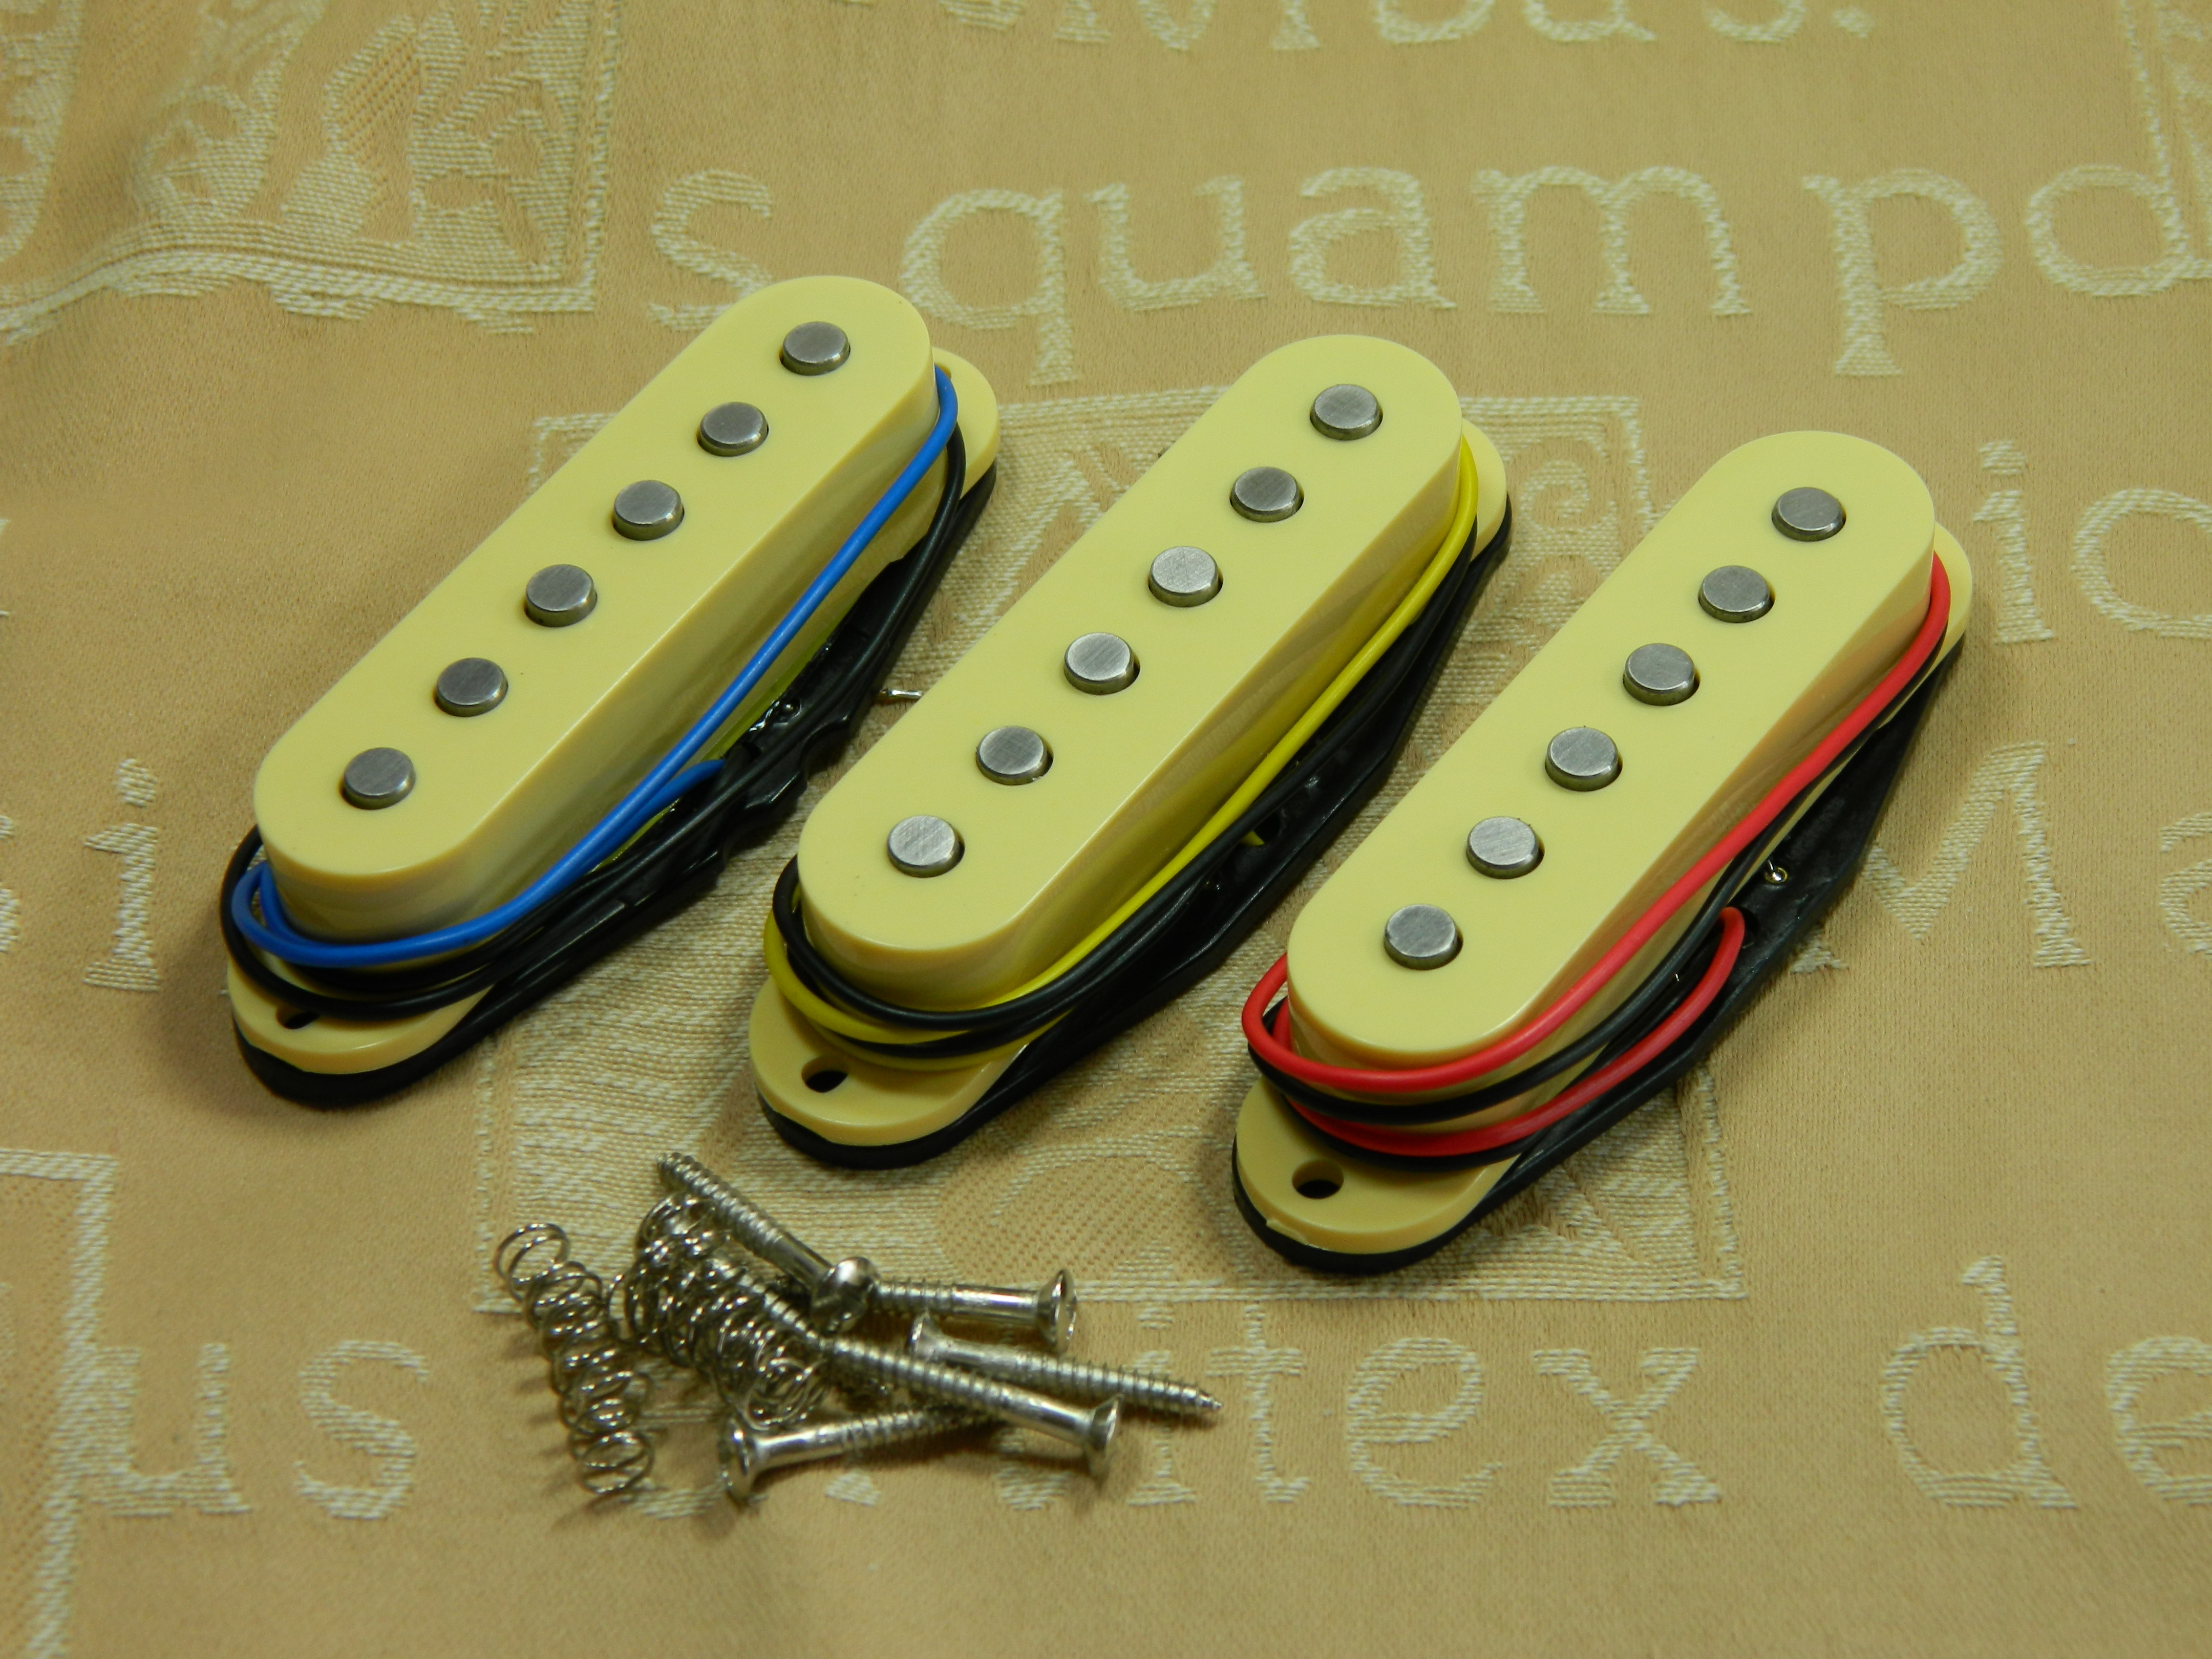 Emg Pickups Wiring Diagram Quotes Get Free Image About Wiring